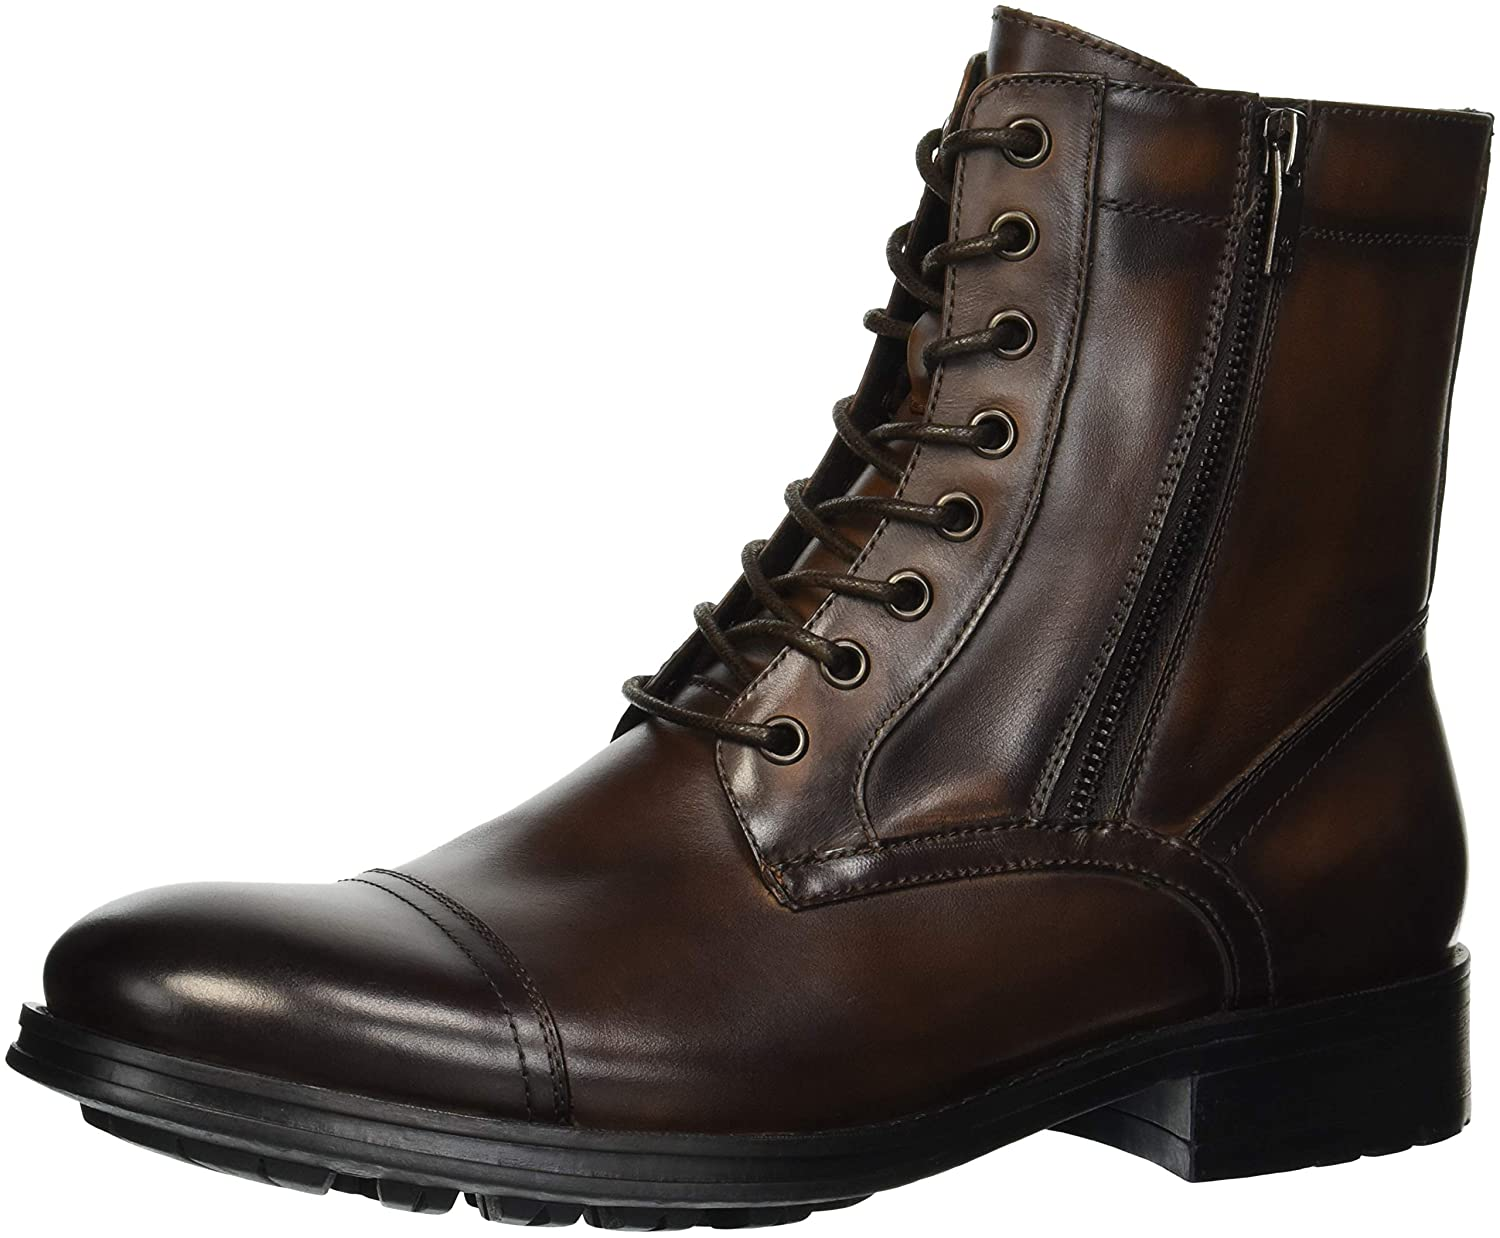 a884af096d61 Amazon.com  Kenneth Cole New York Men s Hugh Fashion Boot  Shoes